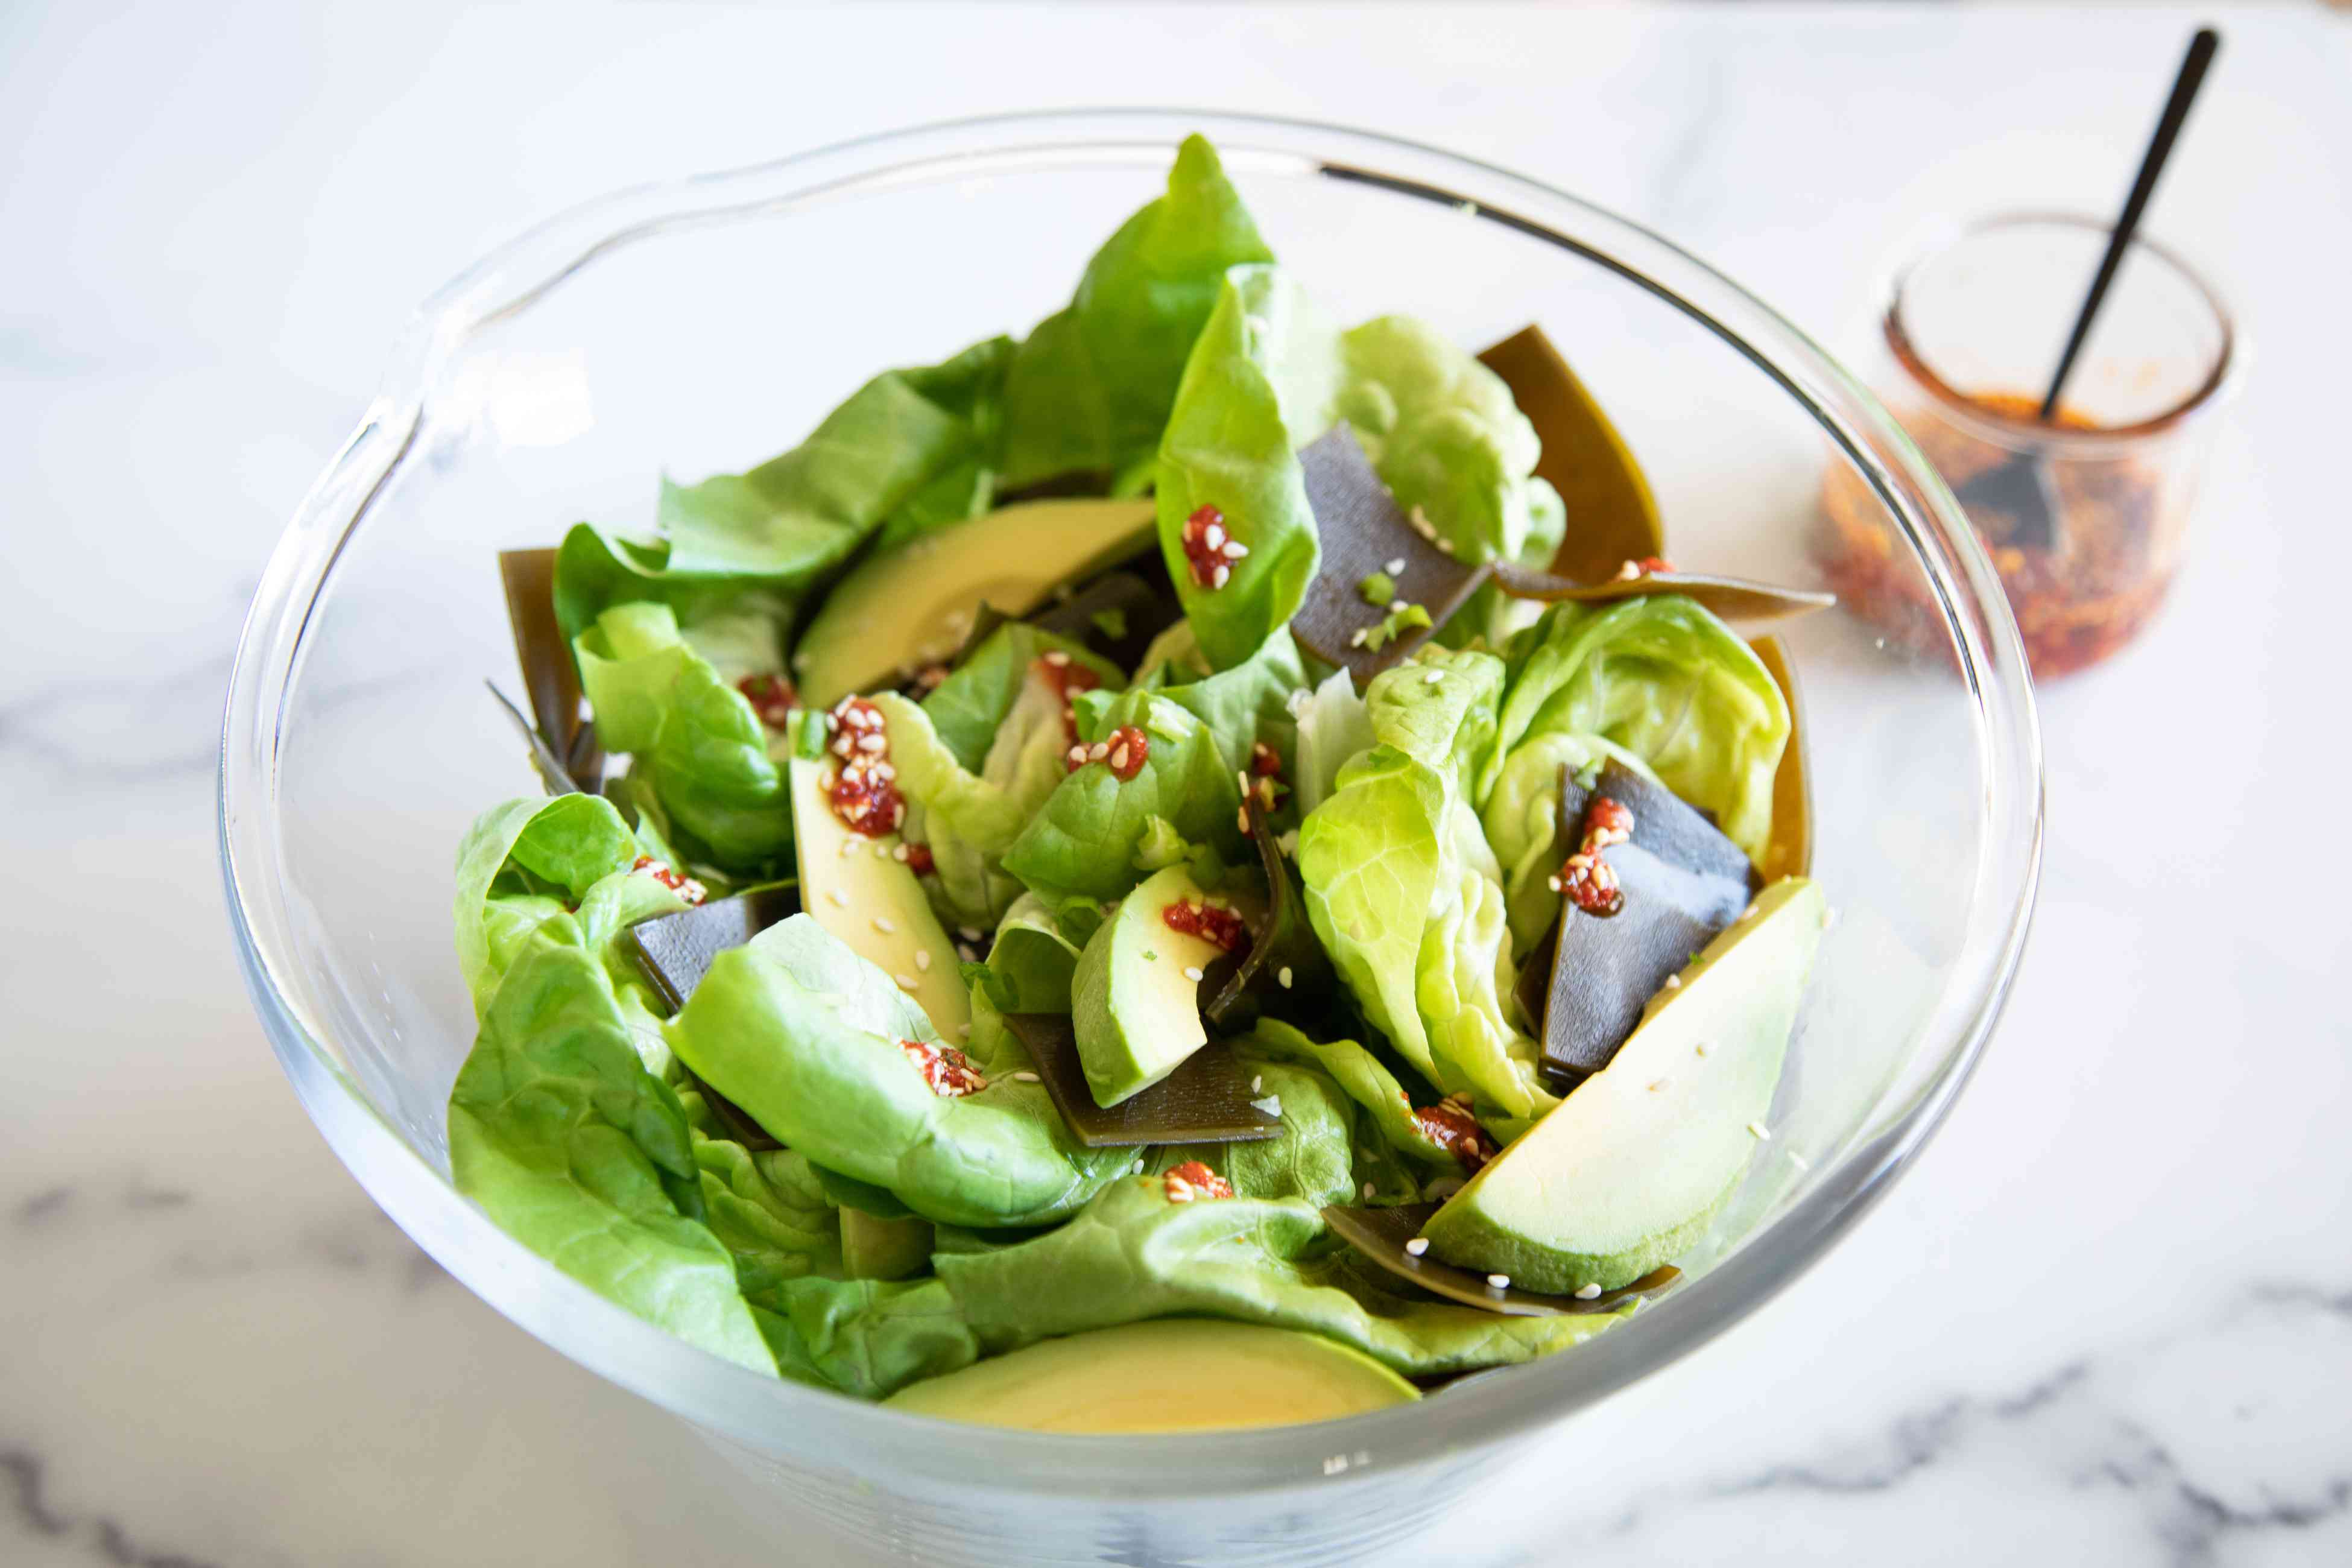 A bowl with lettuce and avocado to make Seaweed Lettuce Salad by Hetty McKinnon.